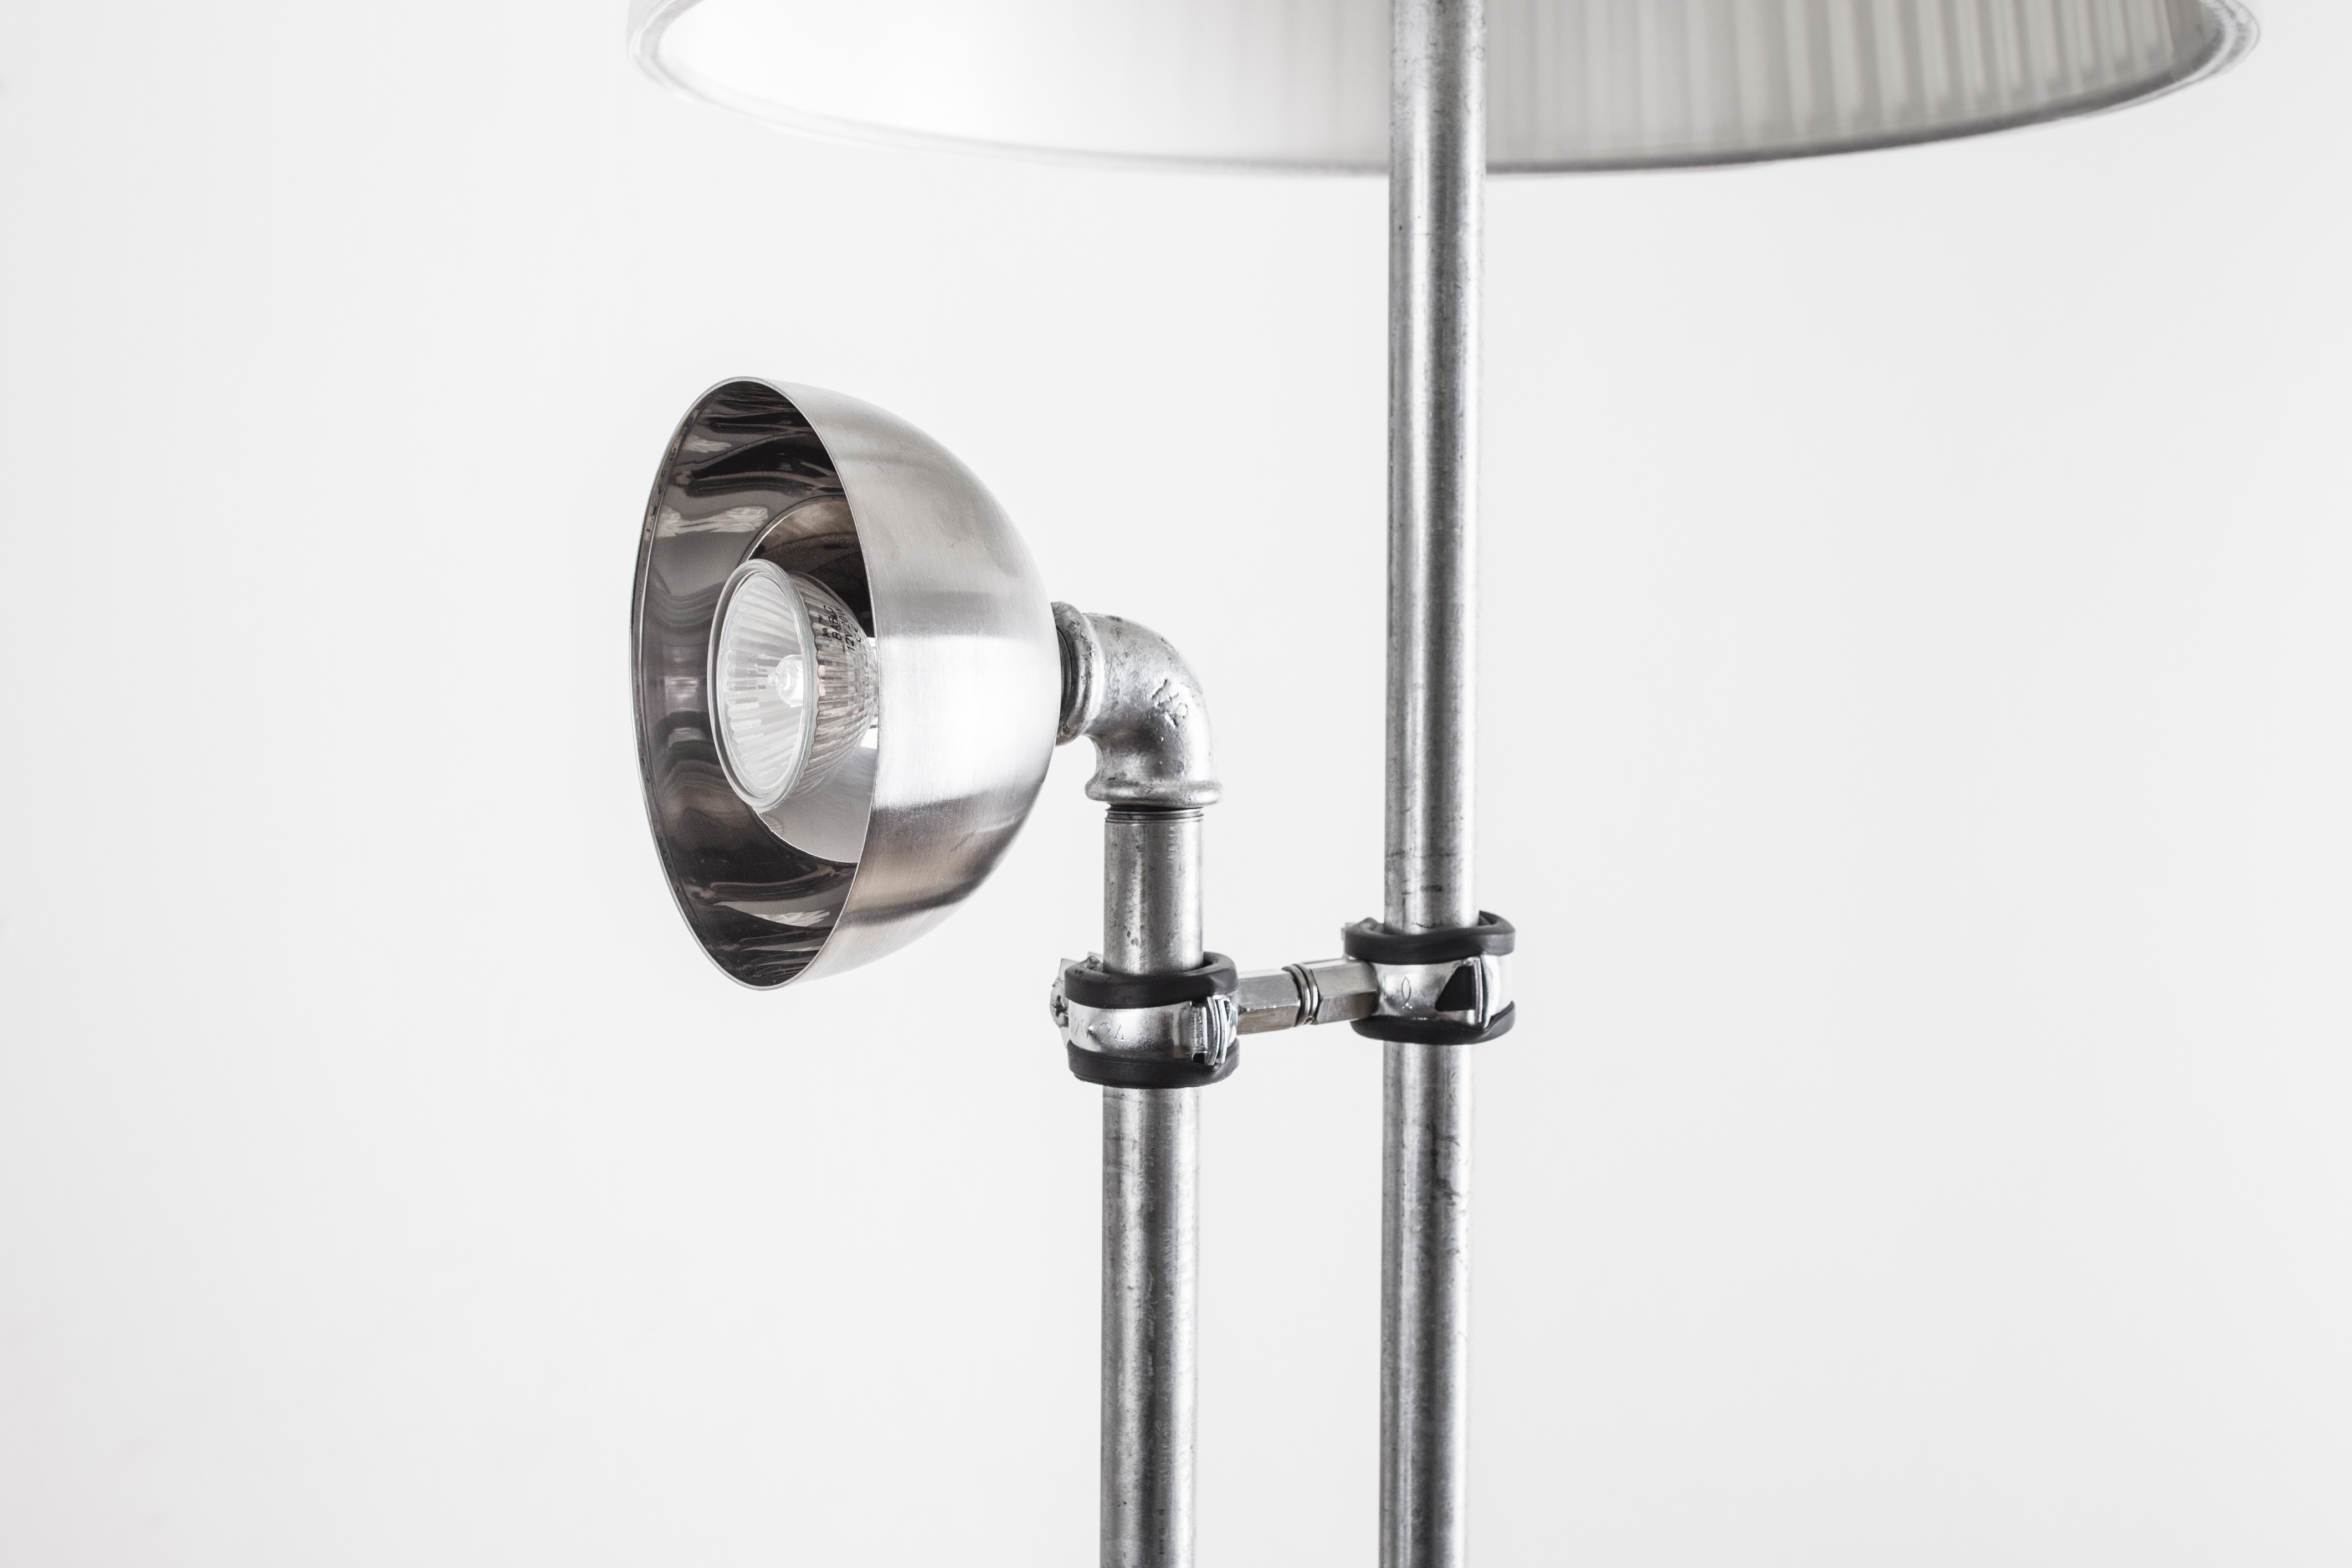 lampa till scenteater Form Design Center